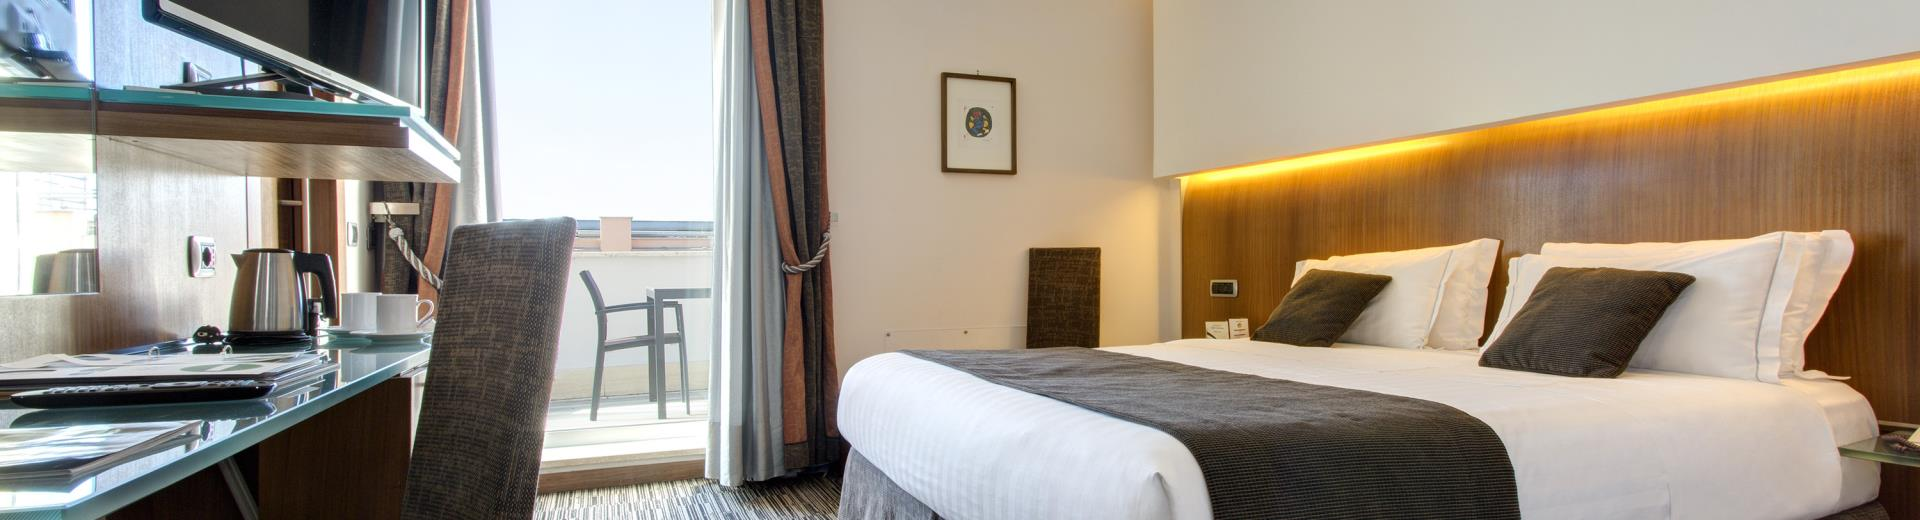 Camera Superior - Best Western Plus Hotel Universo Roma 4 stelle